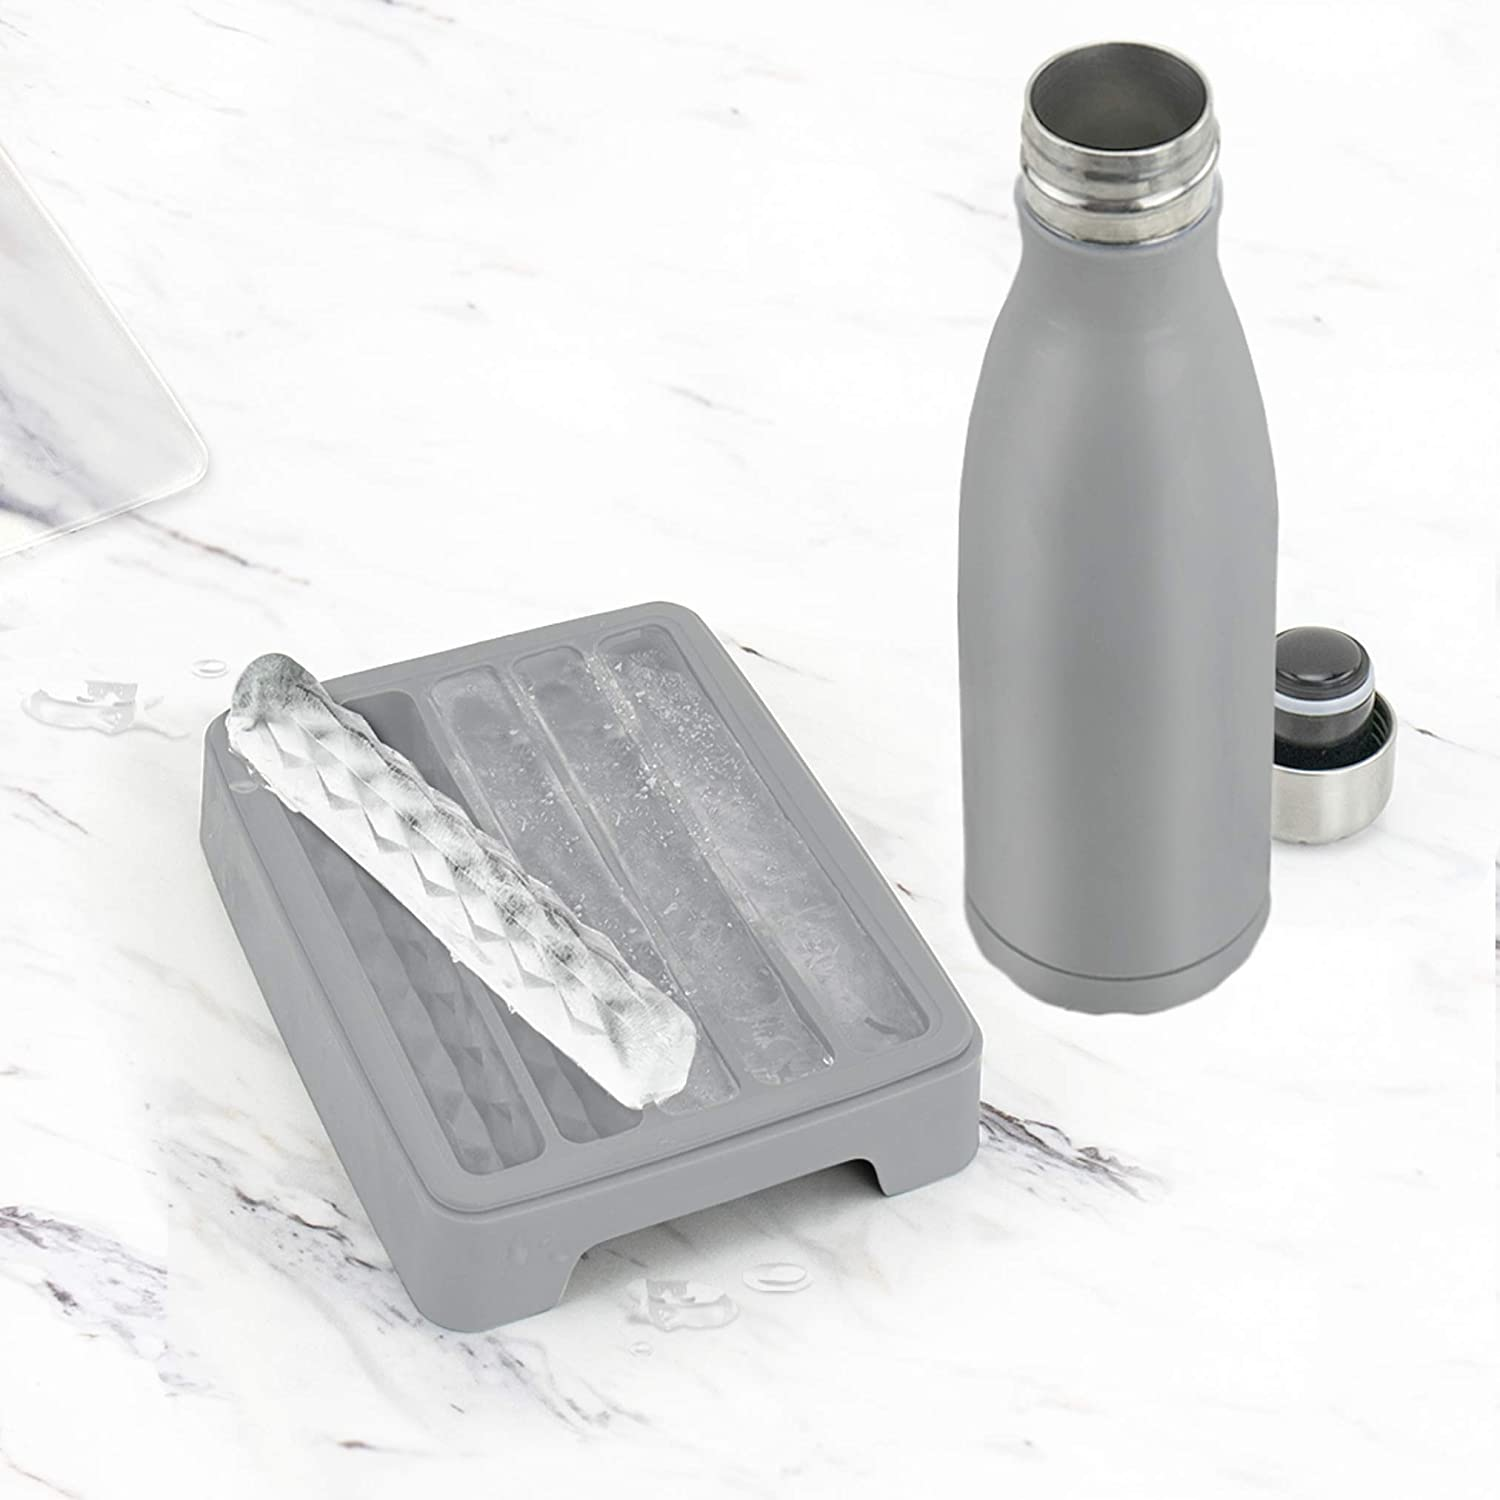 2 X WATER BOTTLE NARROW ICE STICK MAKER TRAY BPA FREE,FREE POST MOULDS